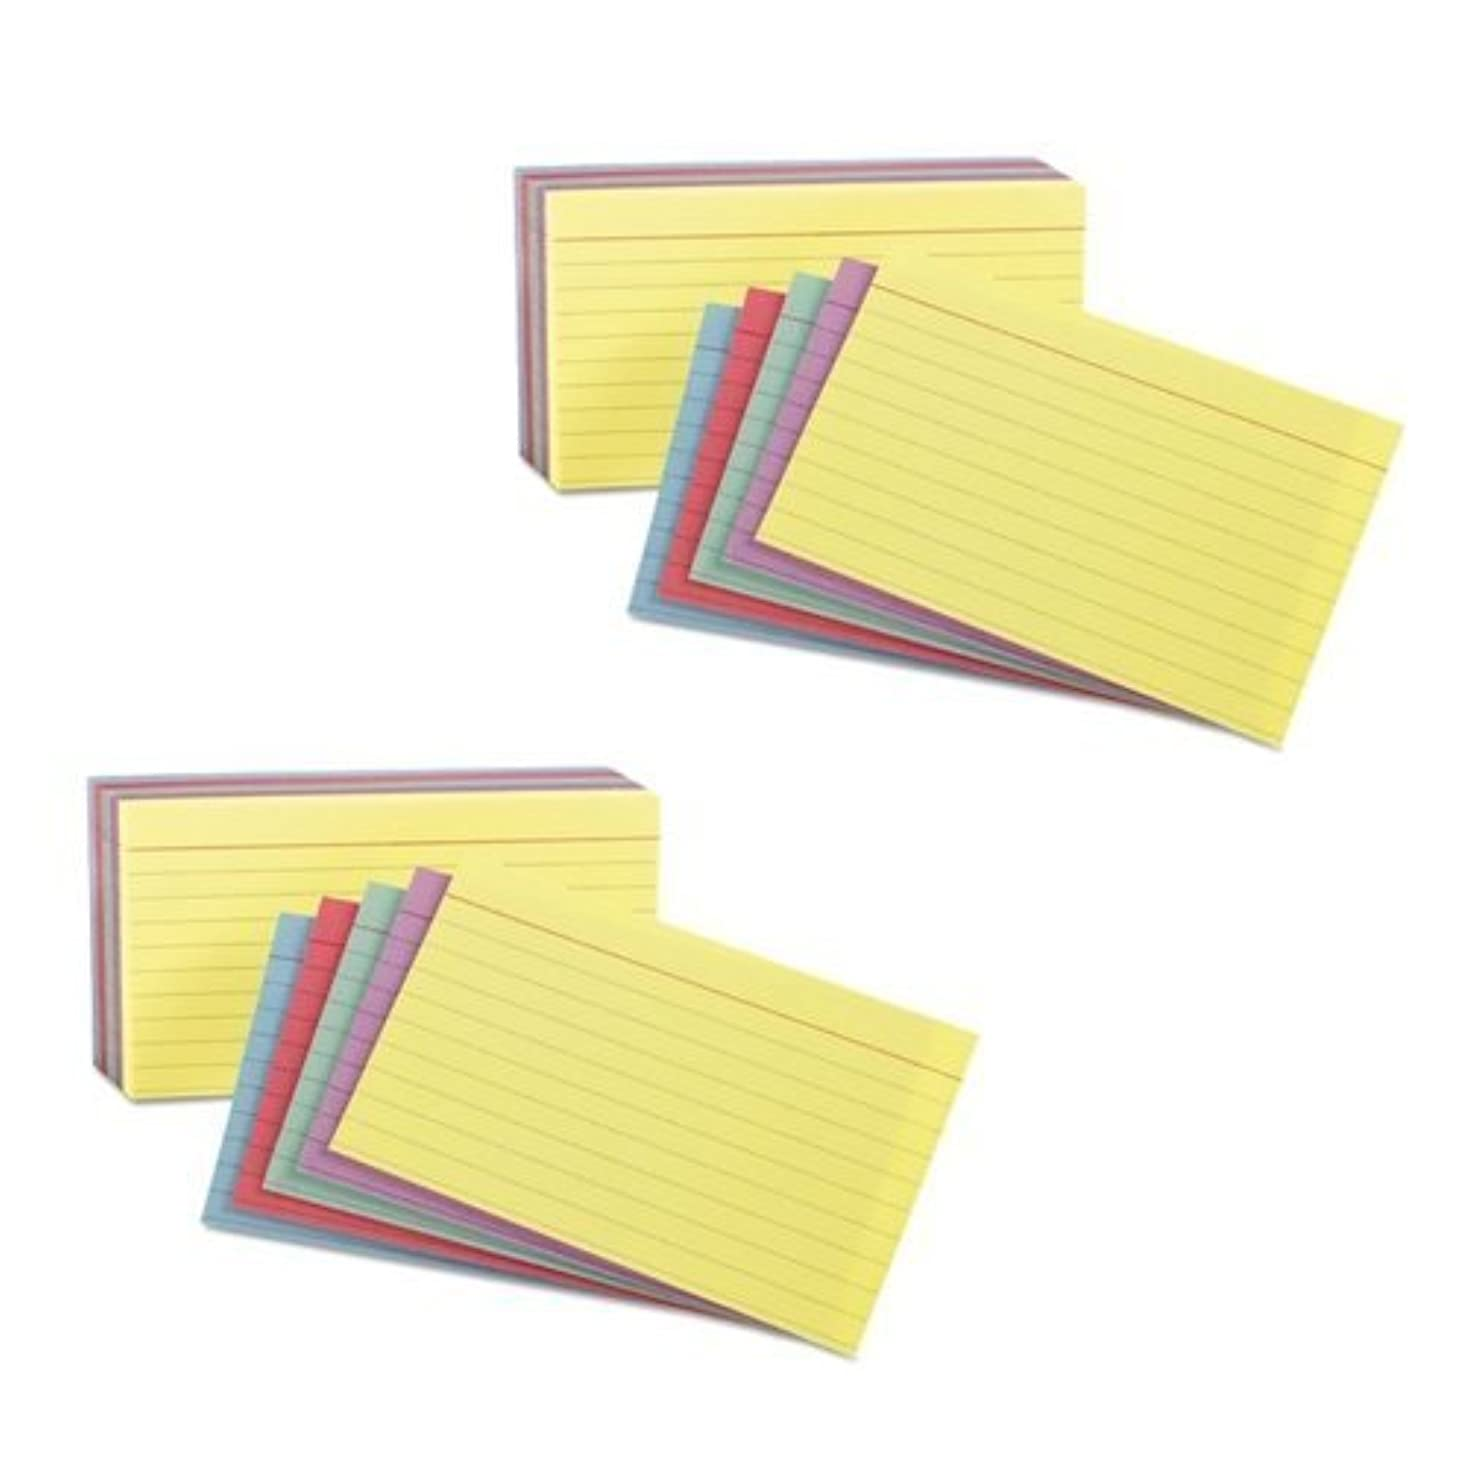 Oxford 3x5 Rainbow Index cards (2 Pack)